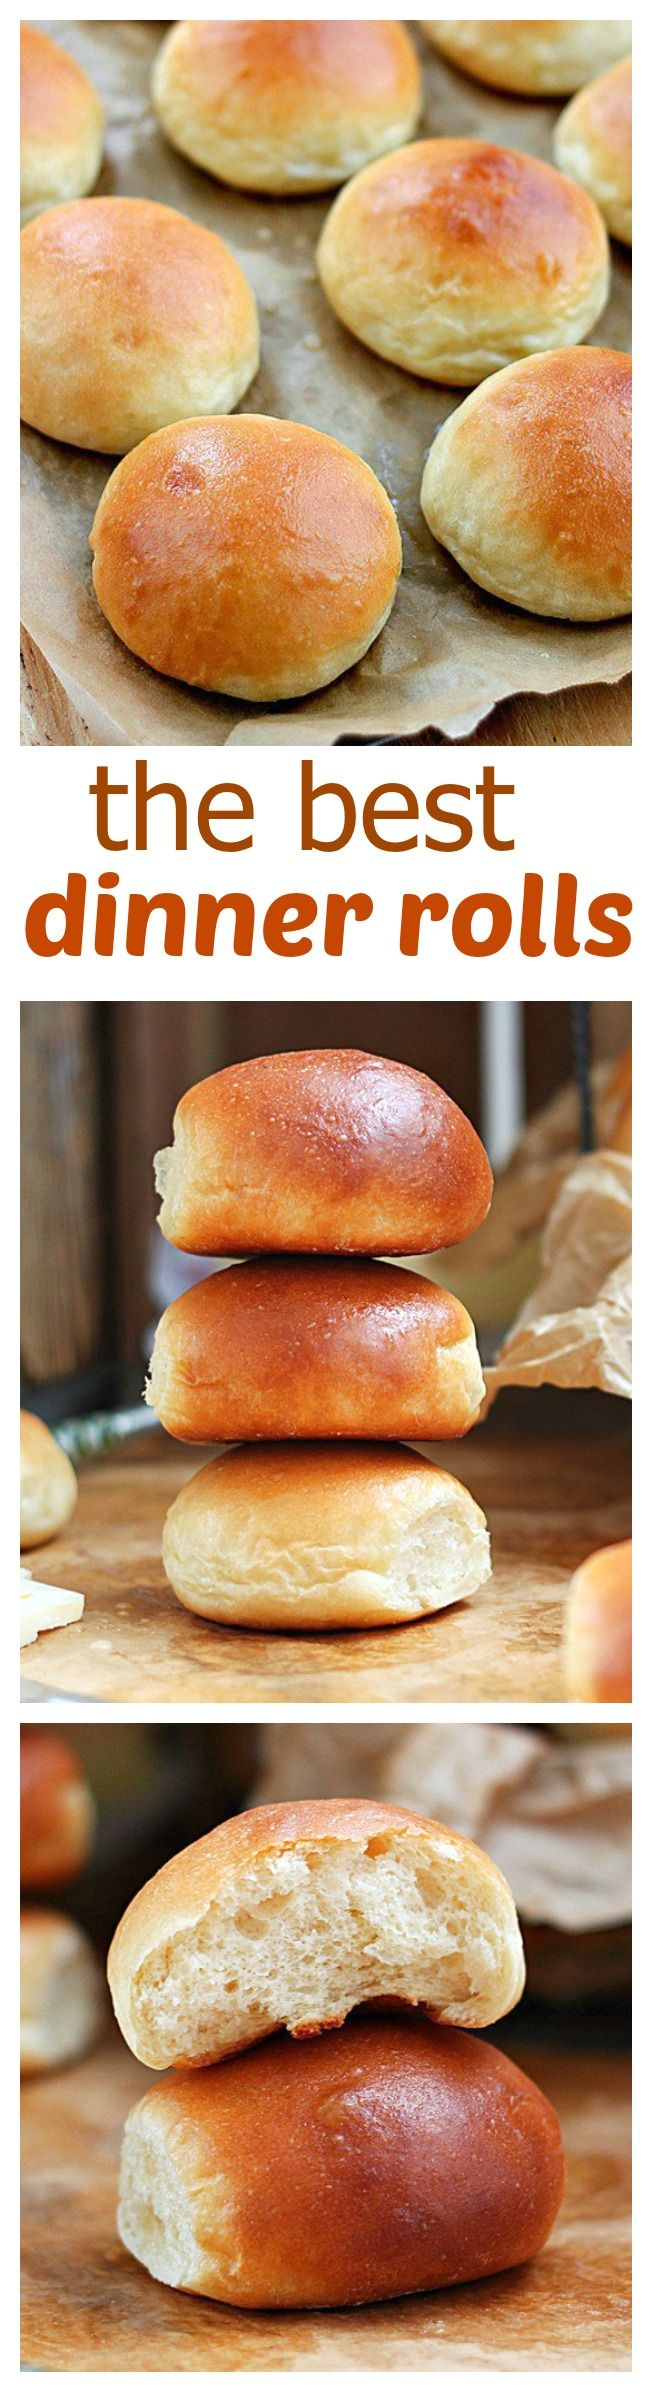 the new air jordan 5 Soft  buttery  tender and warm  straight out of the oven  C these are the best dinner rolls  Once you try this dinner rolls recipe you  ll never want to go back to store bought dinner rolls